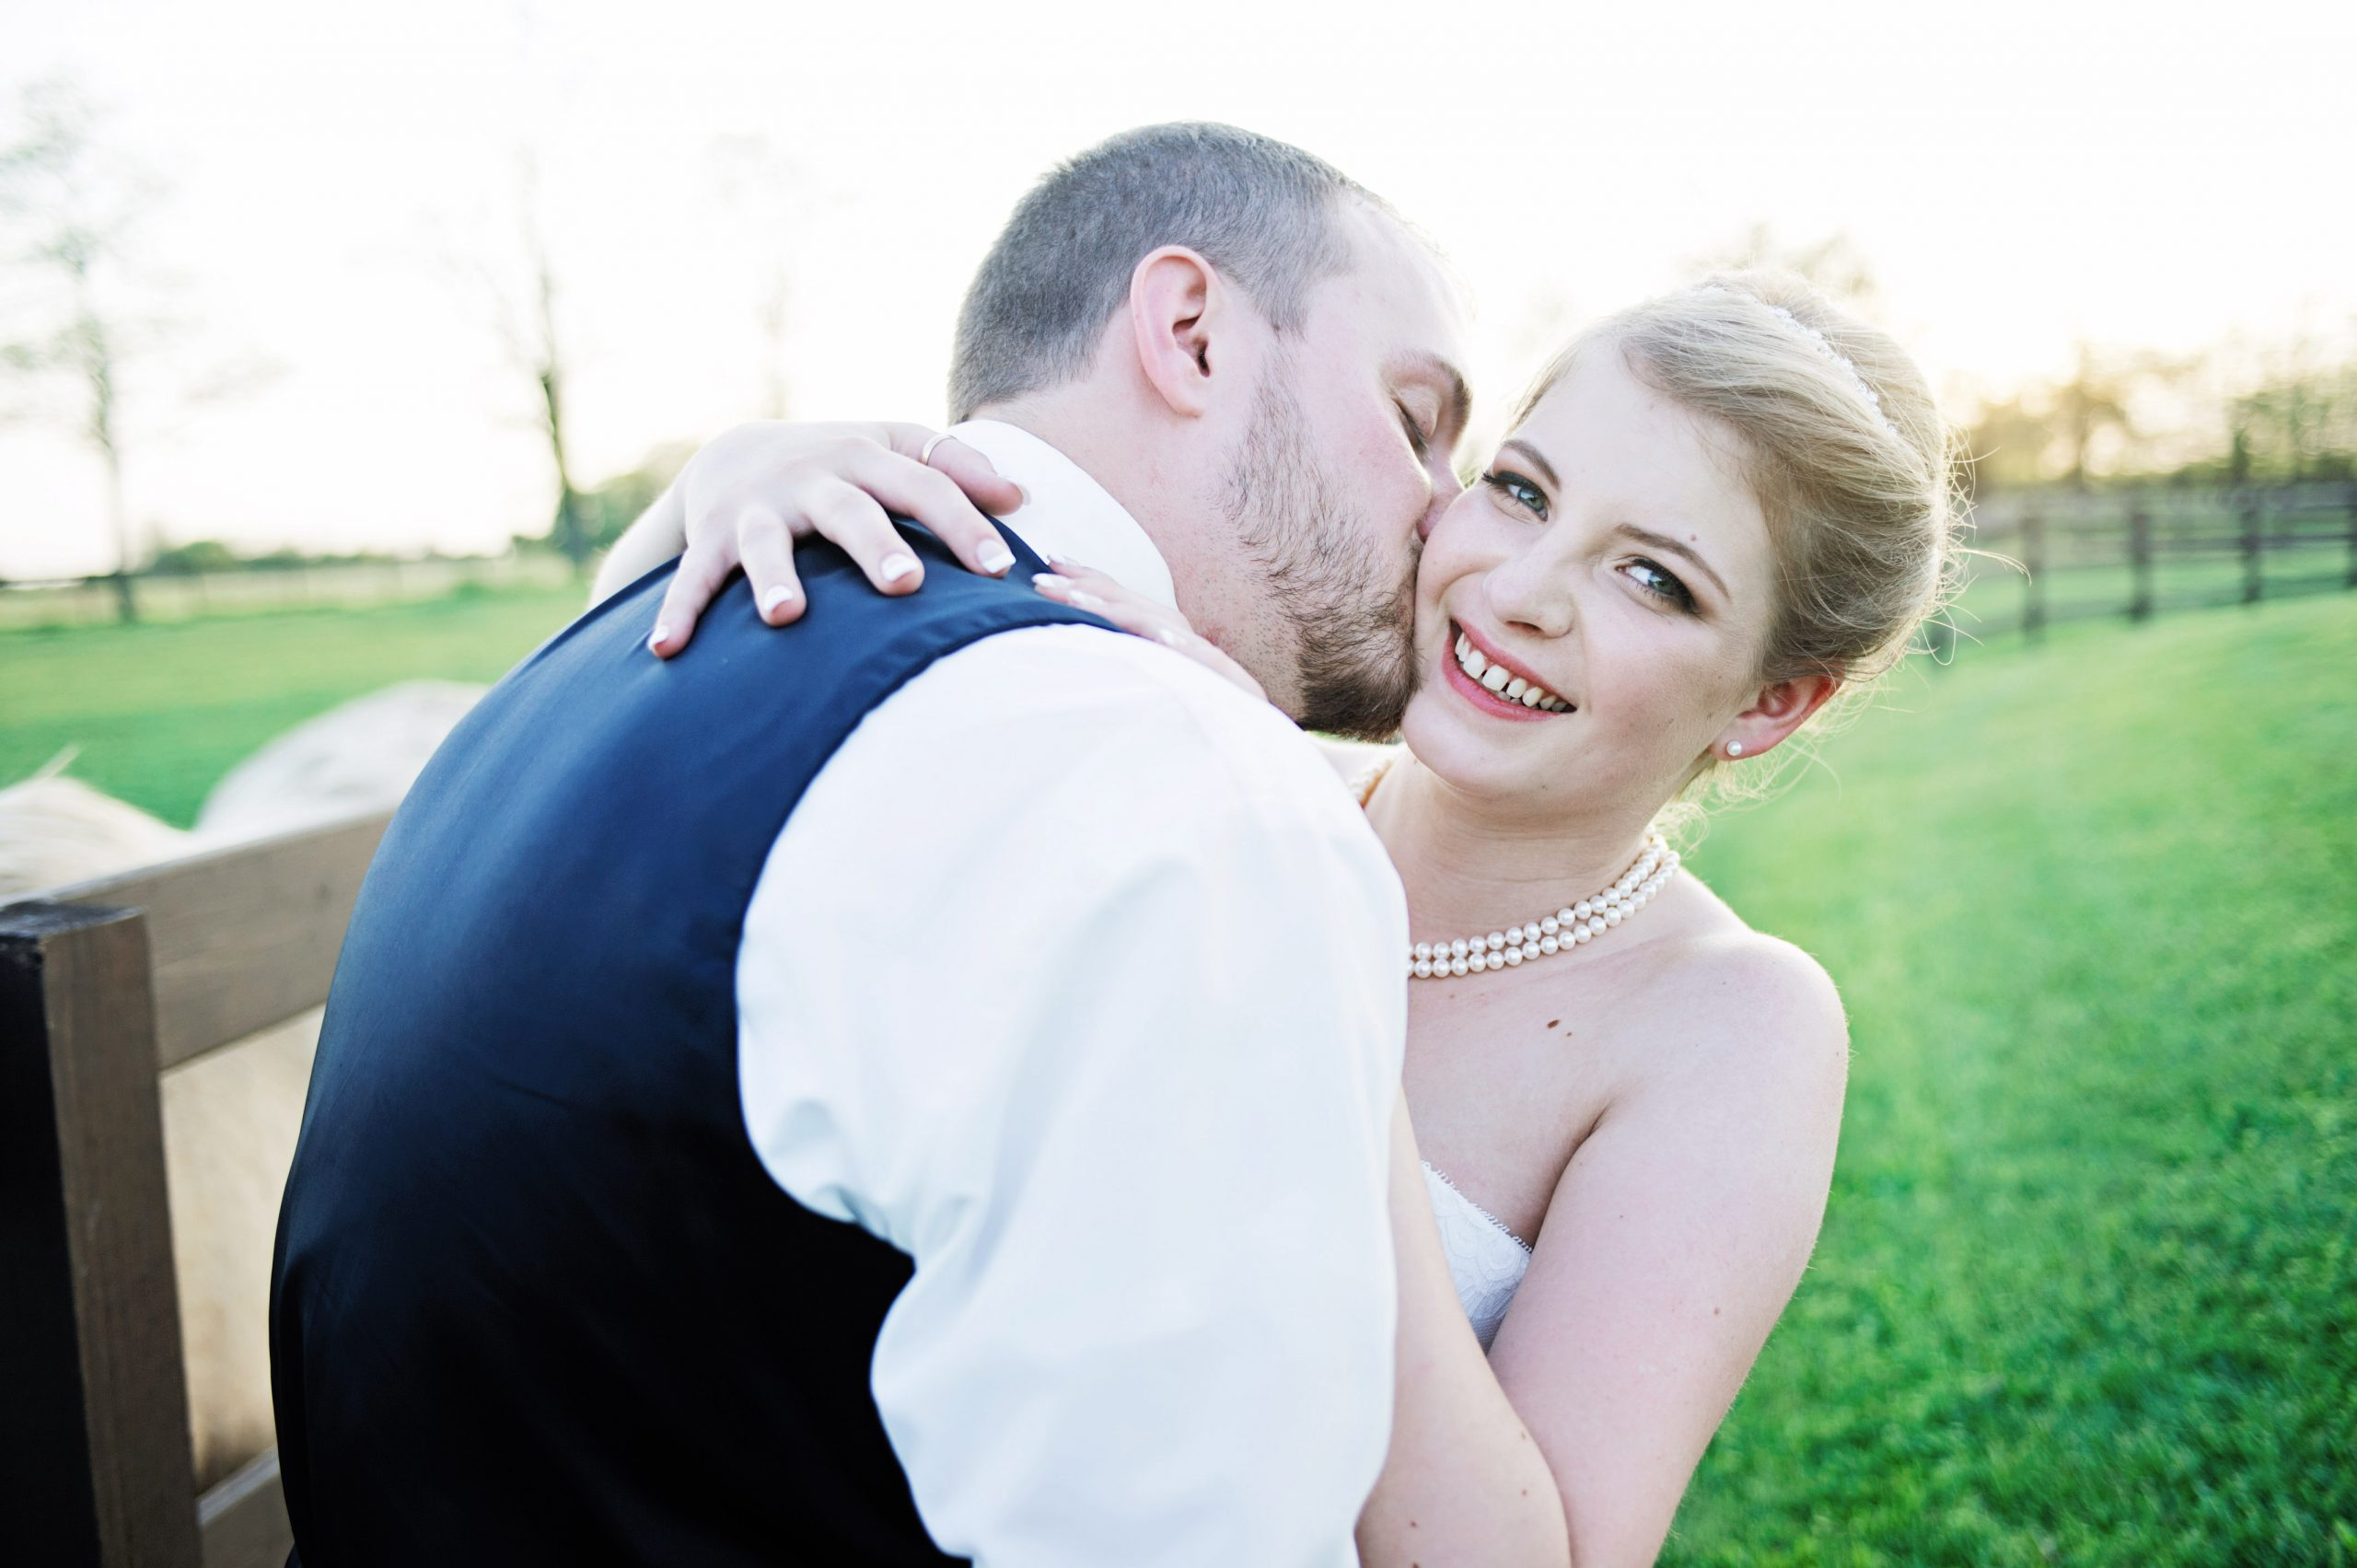 A kiss to the cheek by her hubby, Kady is smiling from ear to ear. Captured by Lovefusion Photography, Lakeview Farms of York, PA offered the perfect background. Featured on Dream Weddings.